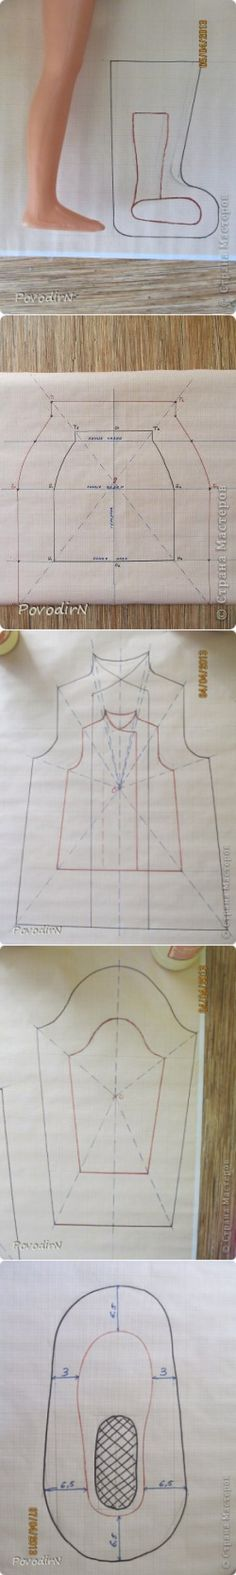 Increasing the pattern for the template.   Country Masters